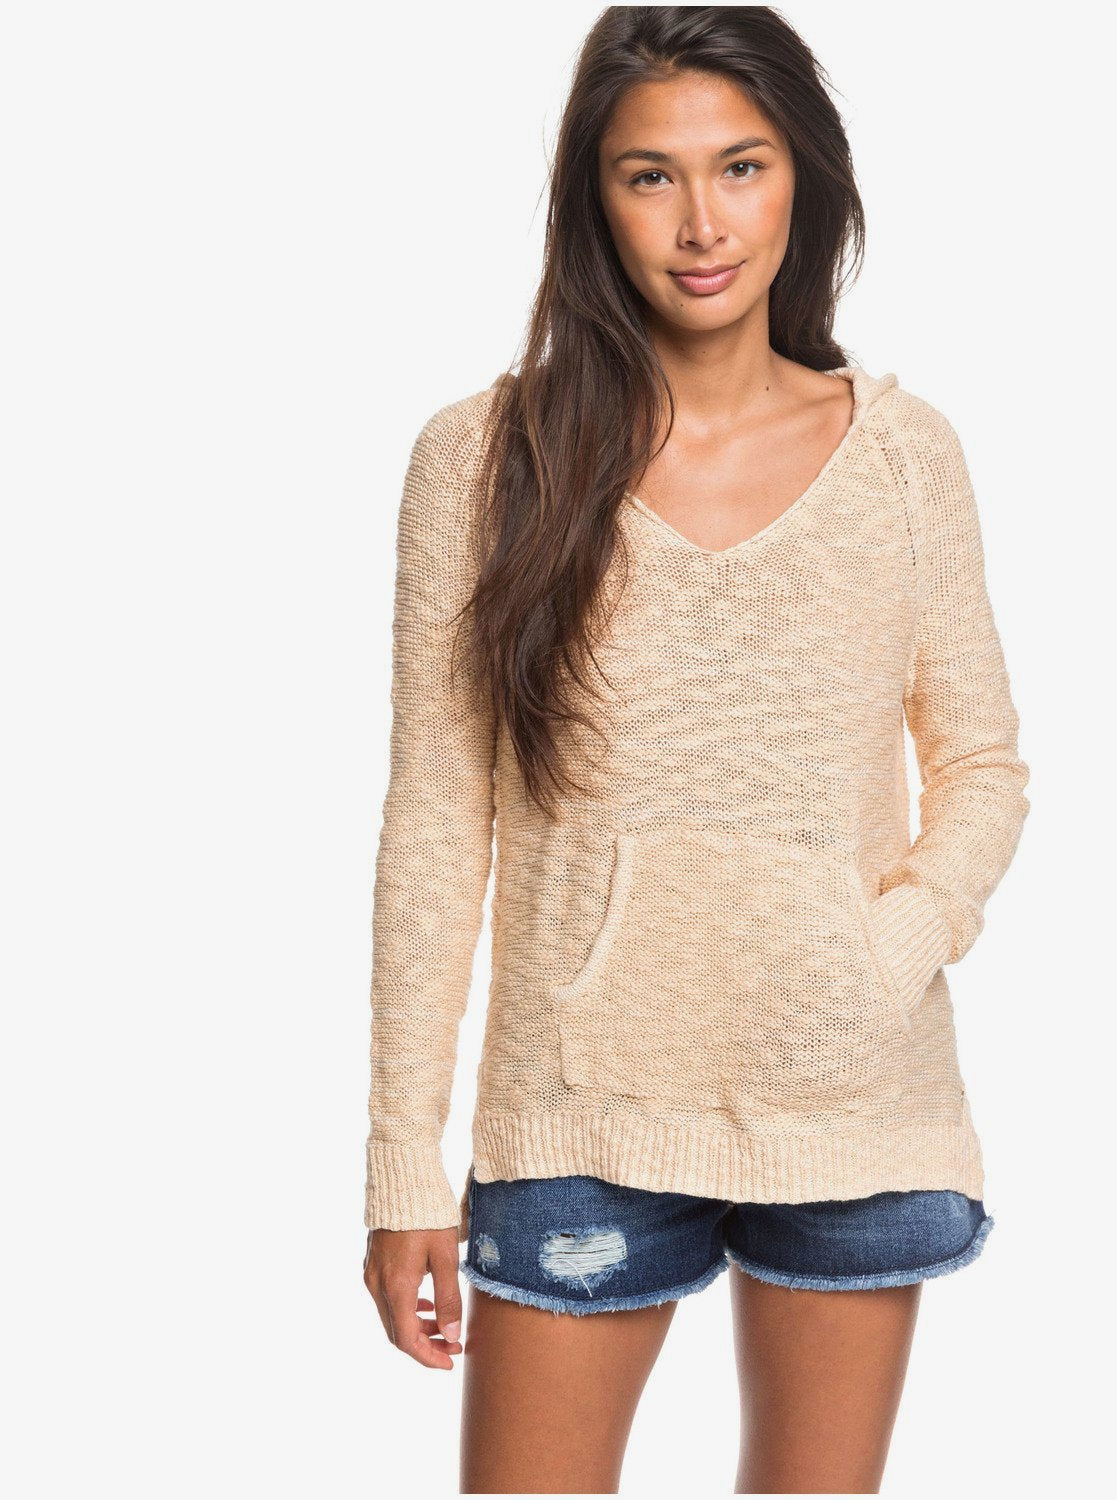 Roxy Airport Vibes Women's Sweater - 88 Gear